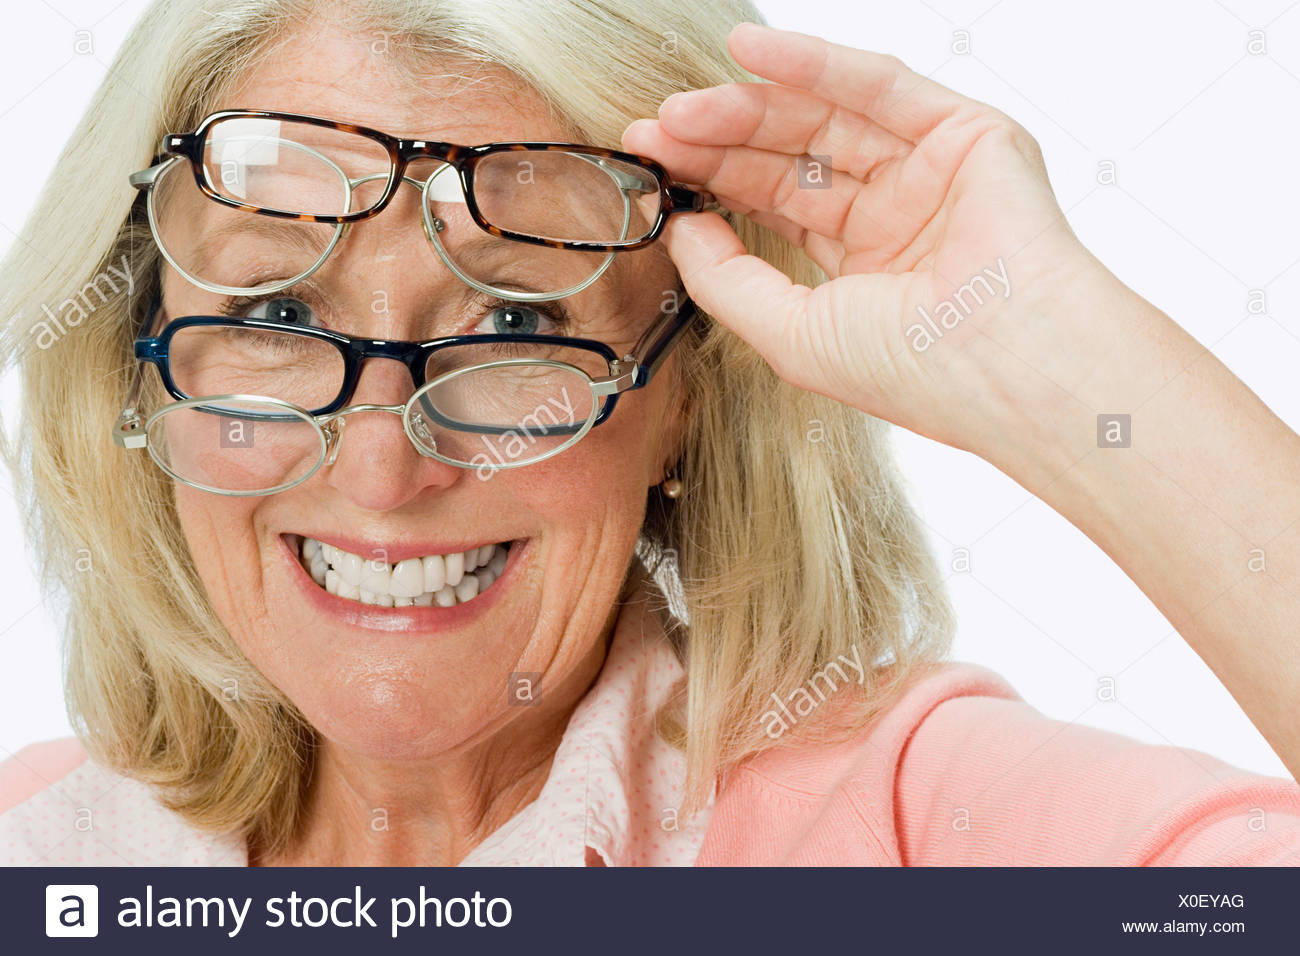 Woman wearing lots of glasses - Stock Image